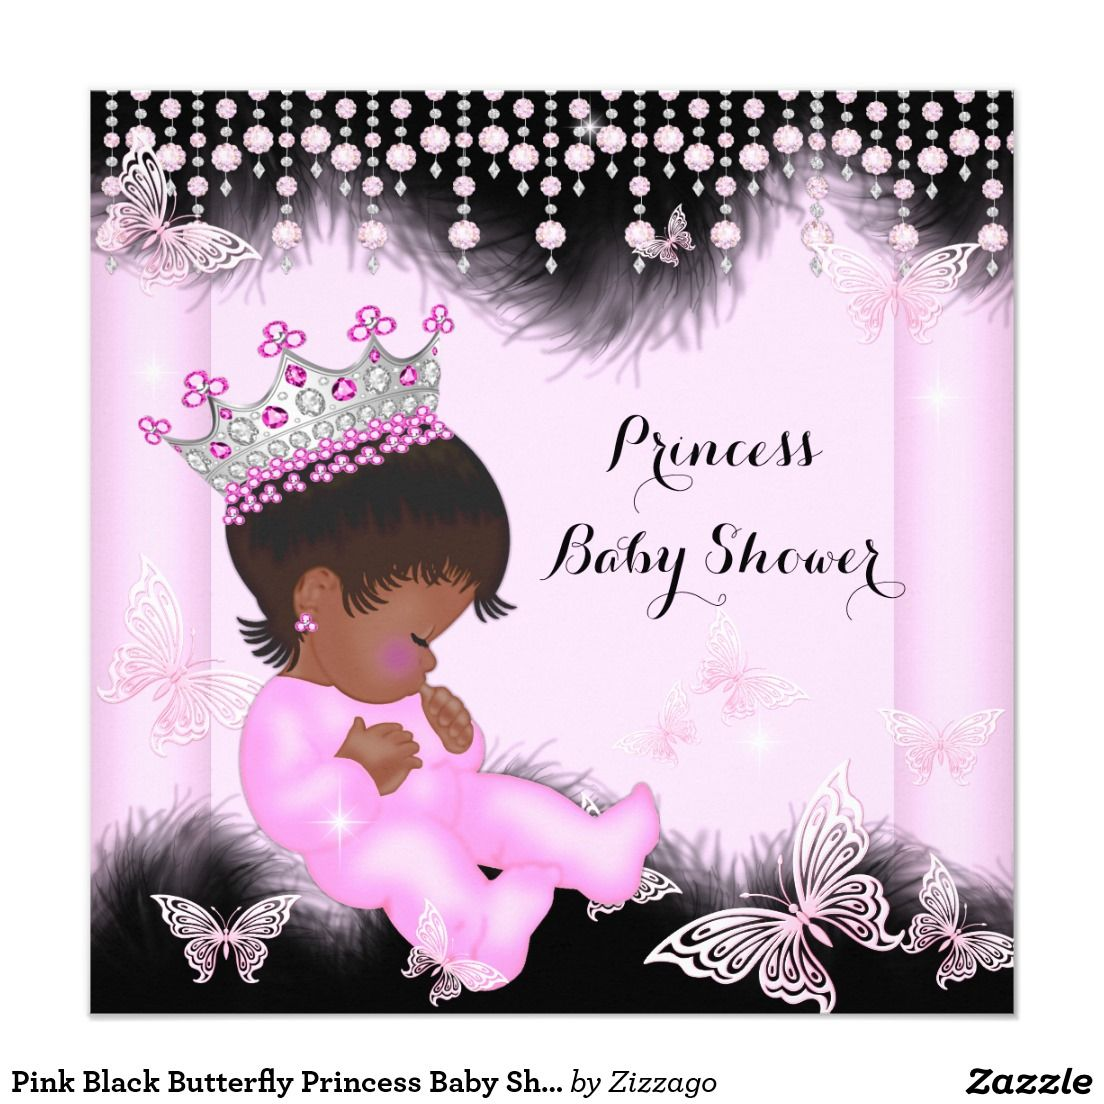 Pink Black Butterfly Princess Baby Shower Ethnic